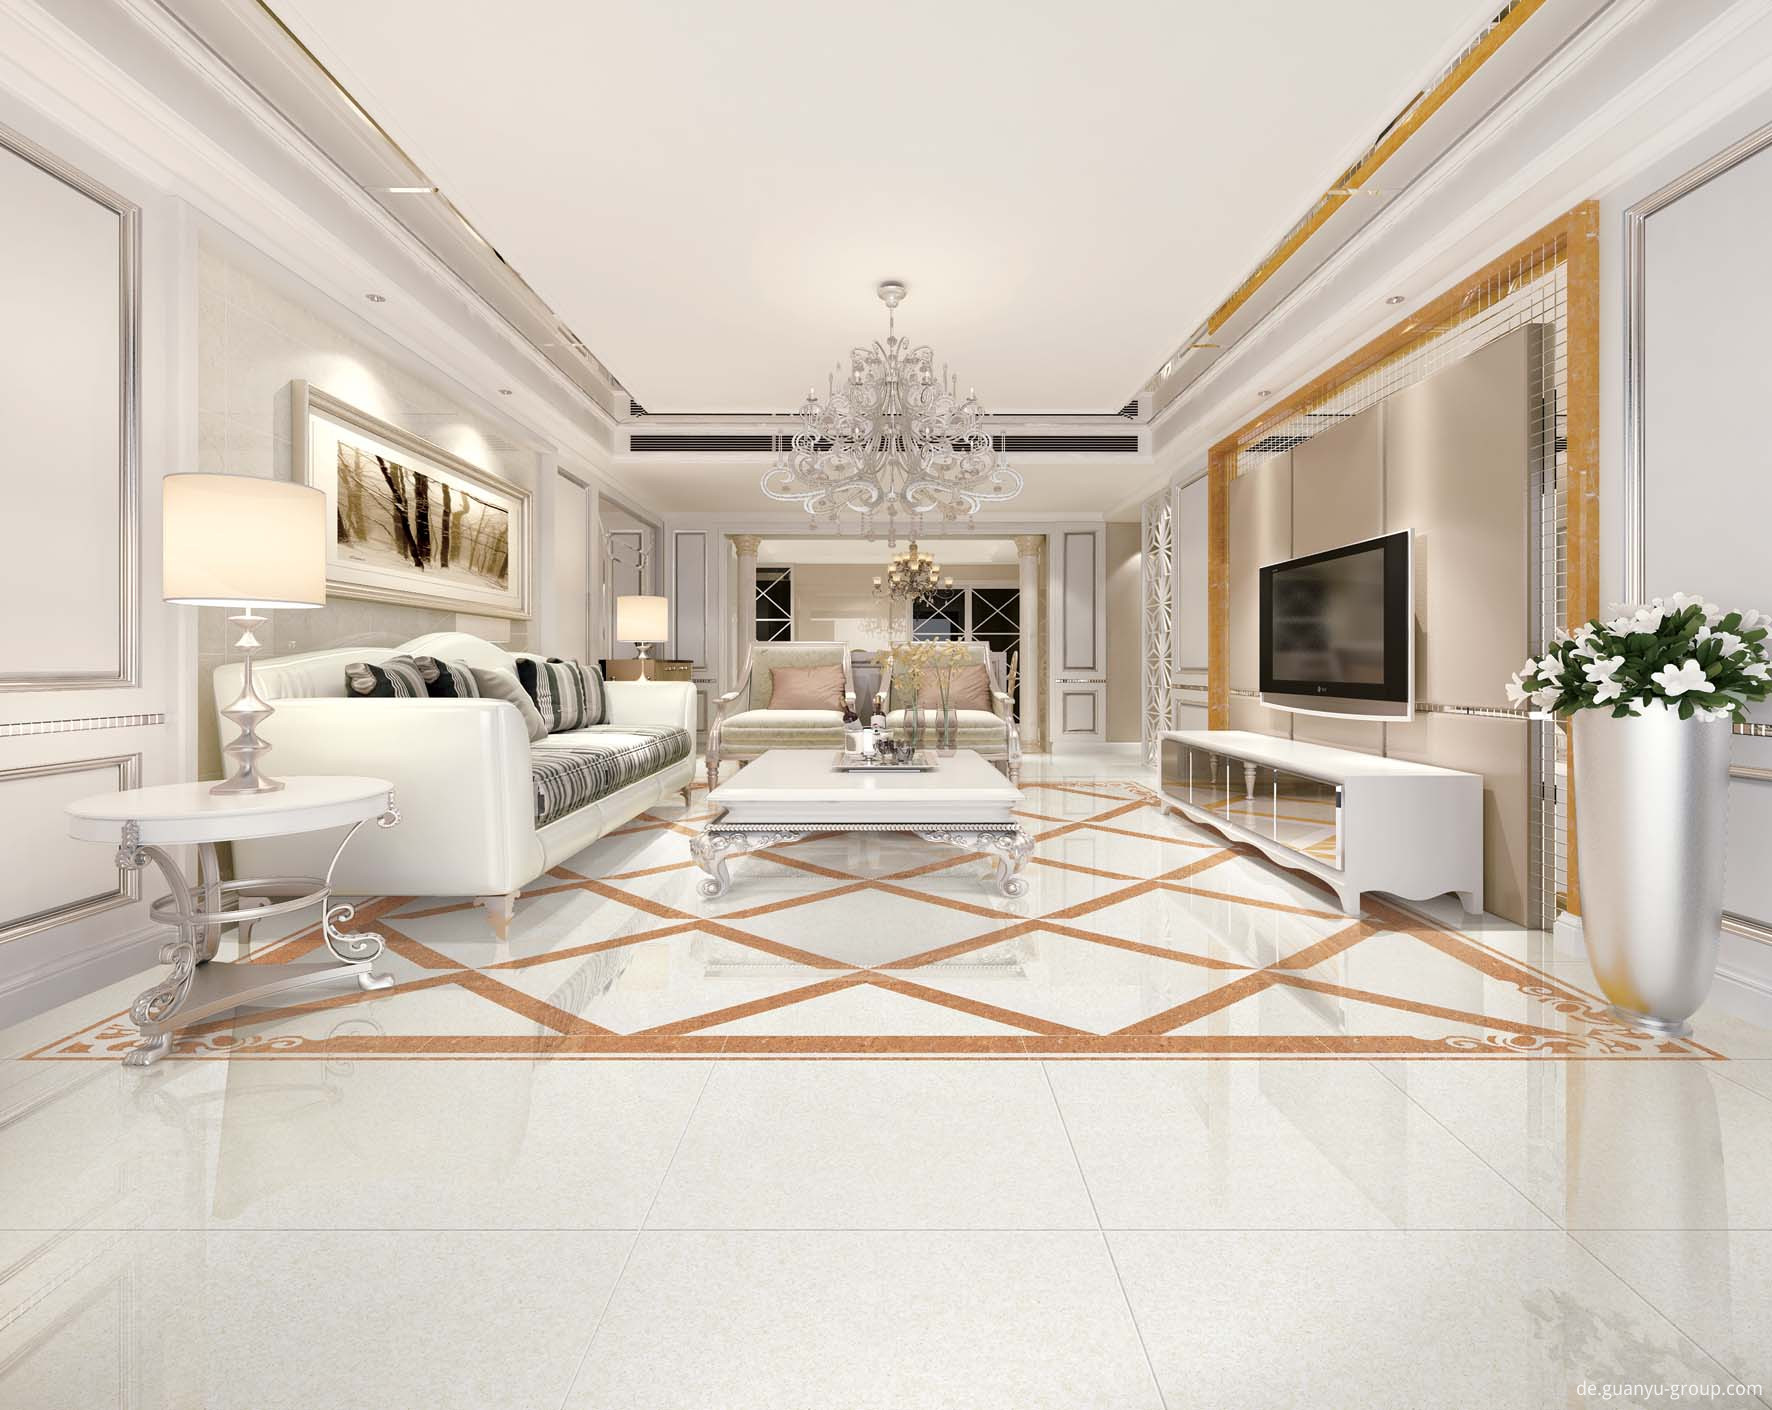 Luxury Microcrystal Polished Porcelain Tile